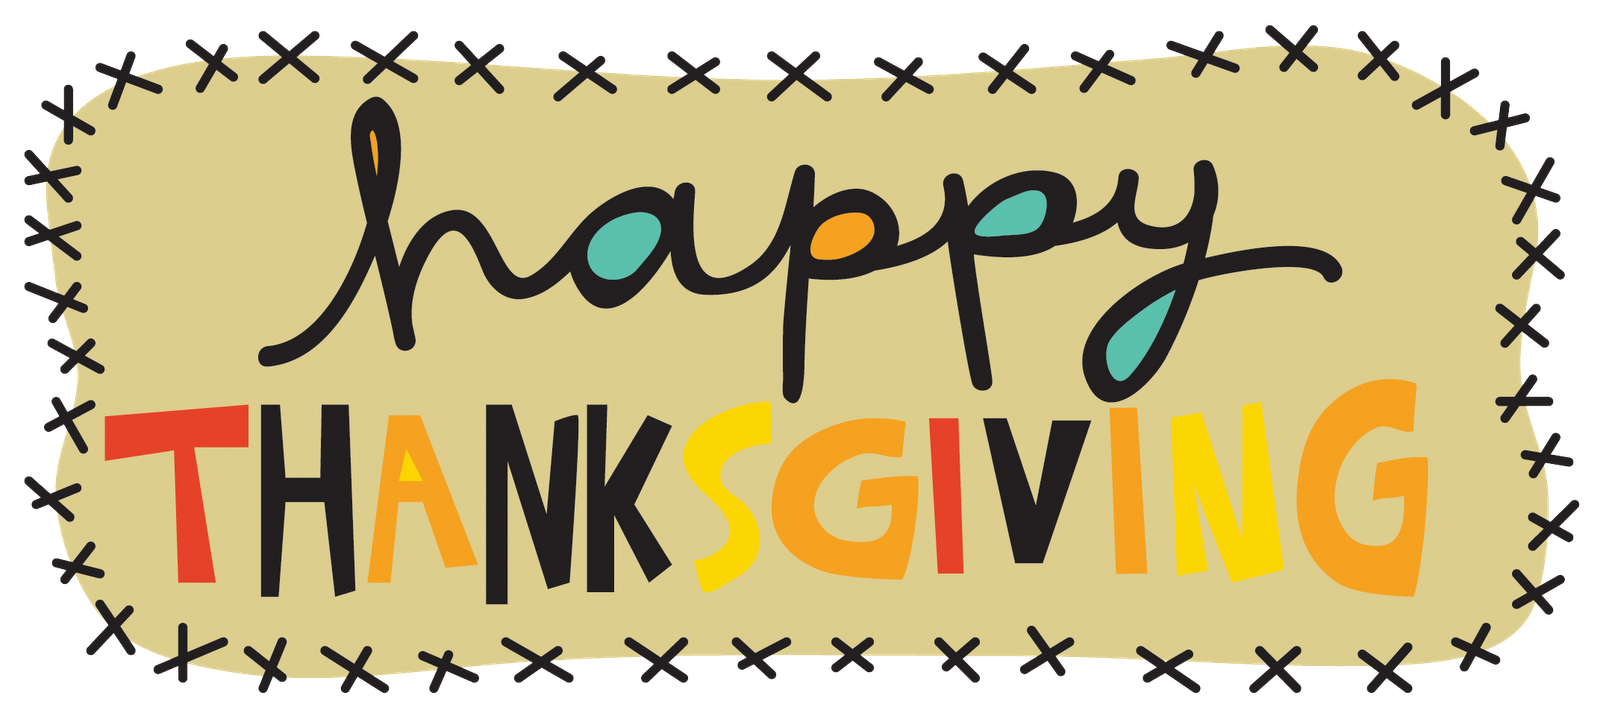 1600x716 Thanksgiving Clip Art In Spanish – Happy Thanksgiving